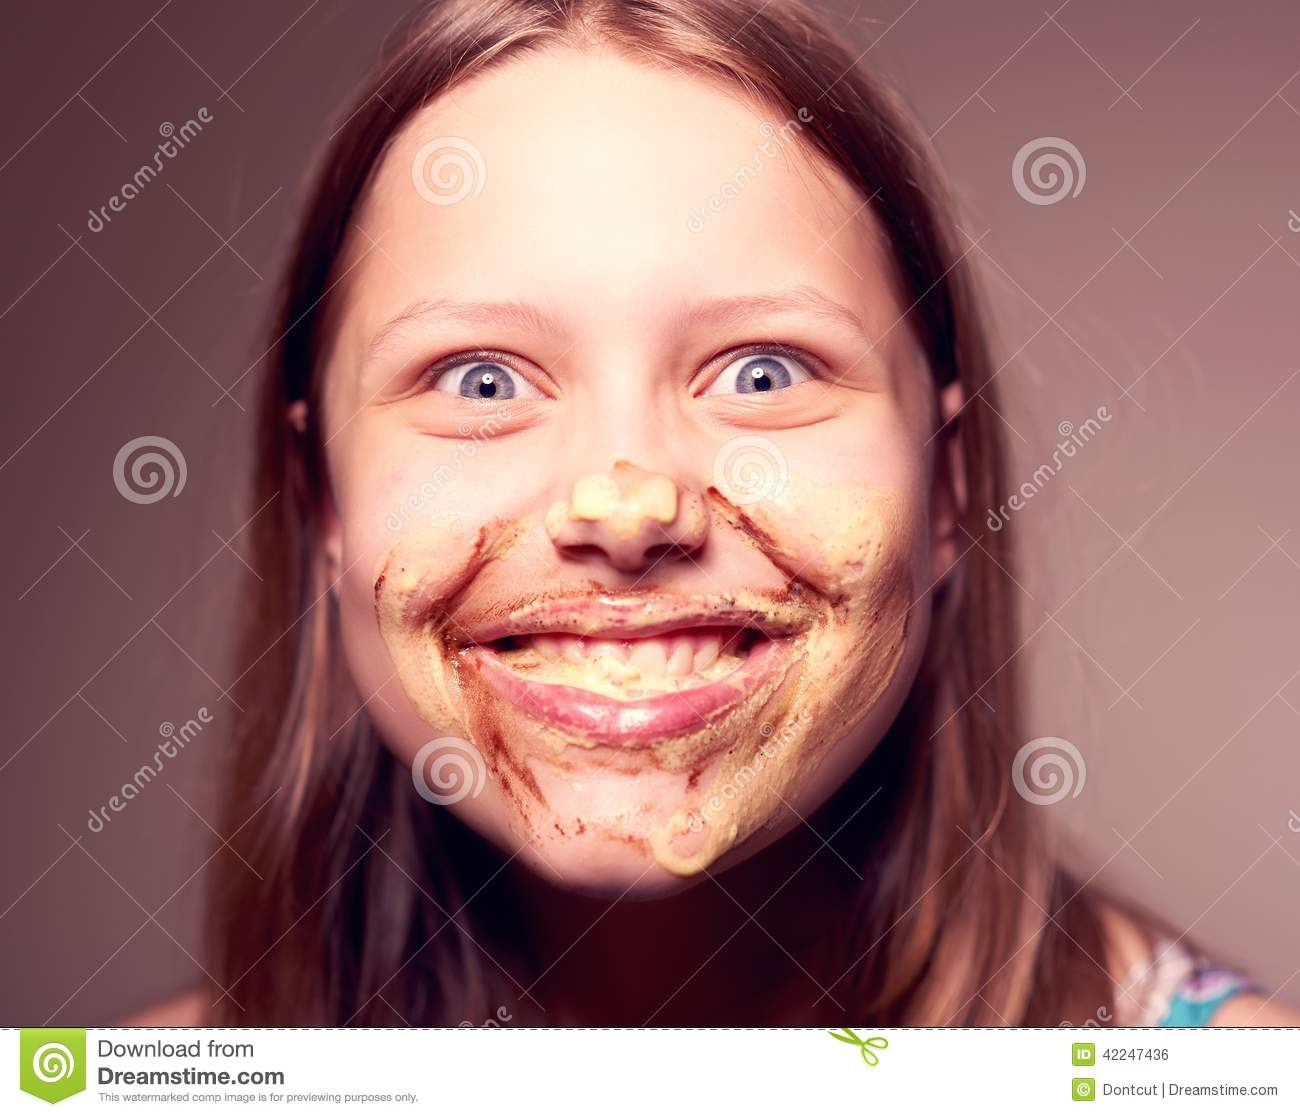 Teen Girl With Chocolate On Her Face Stock Photo - Image: 42247436